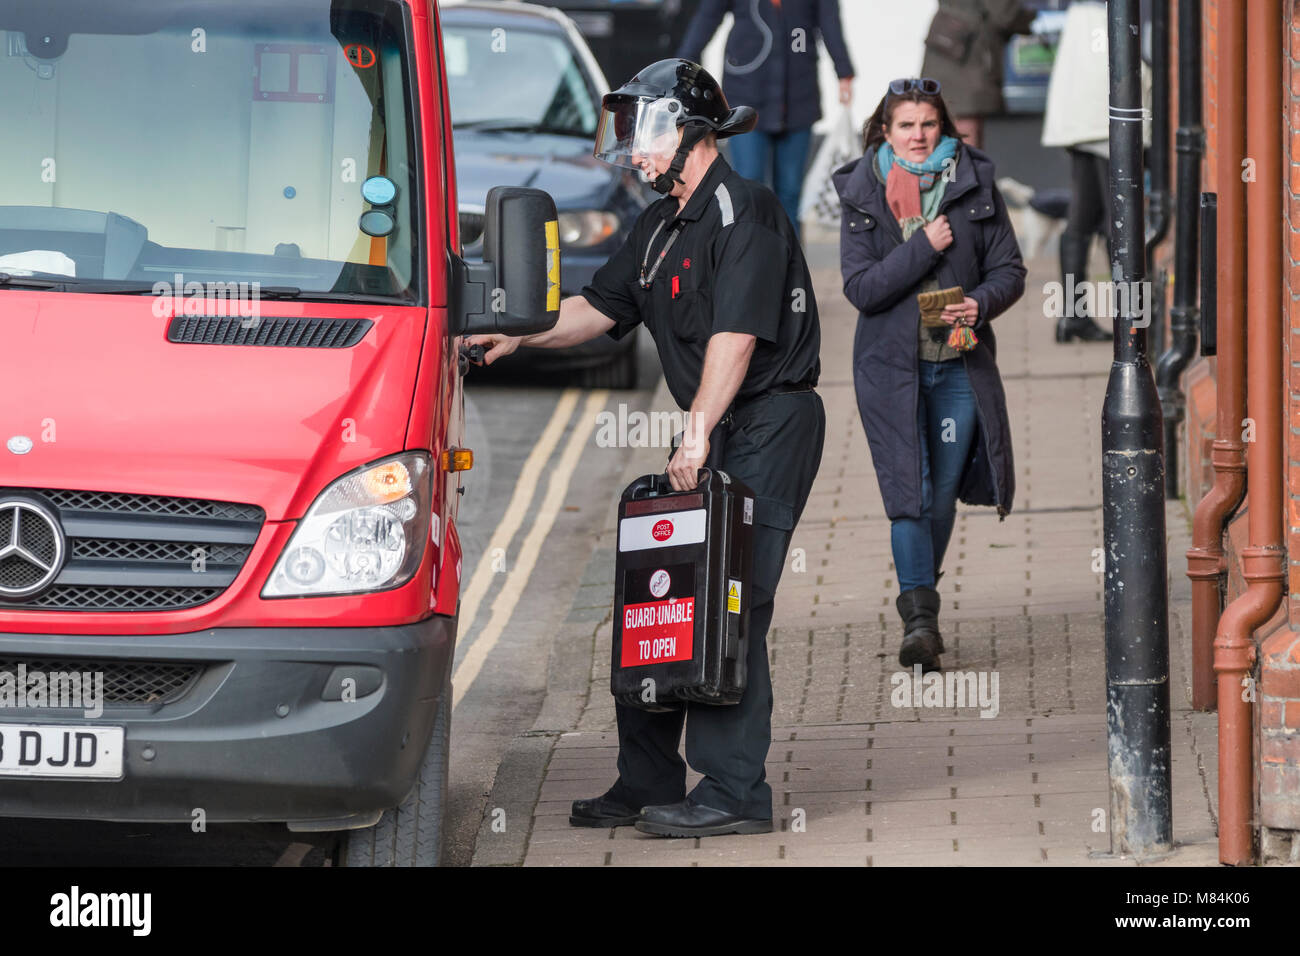 Male Post Office security guard in secure protective clothing carrying secure case to a van while delivering money - Stock Image